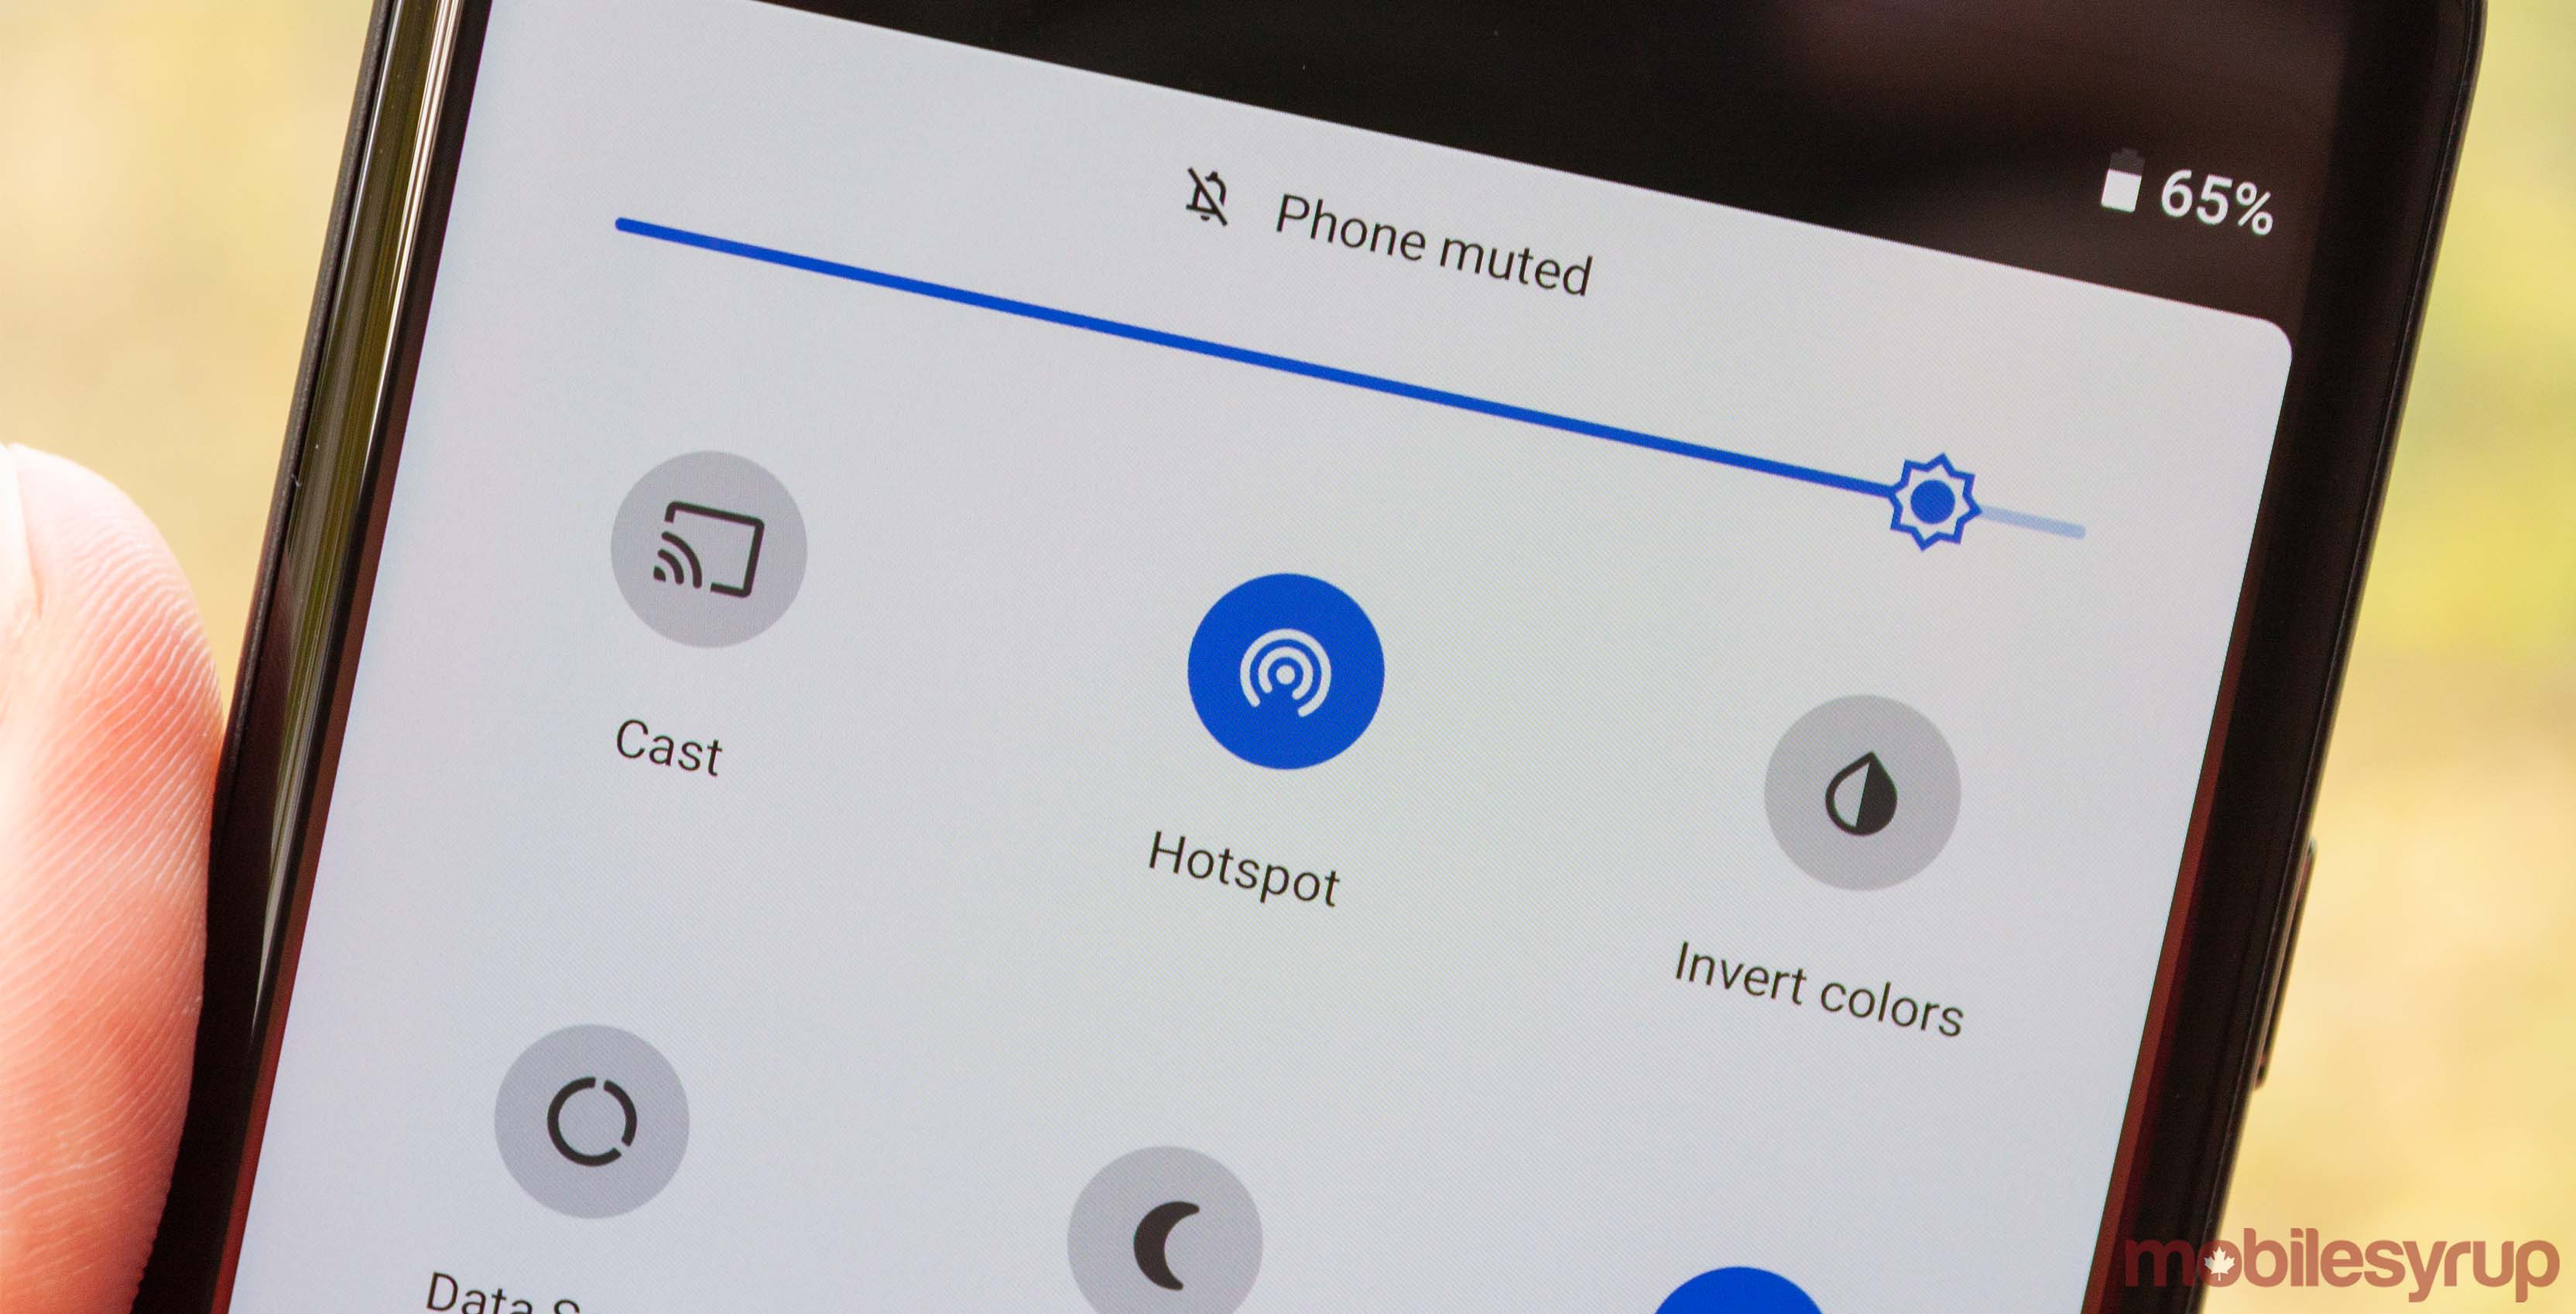 Google's Pixel 3 and 3 XL can hotspot Wi-Fi as well as LTE